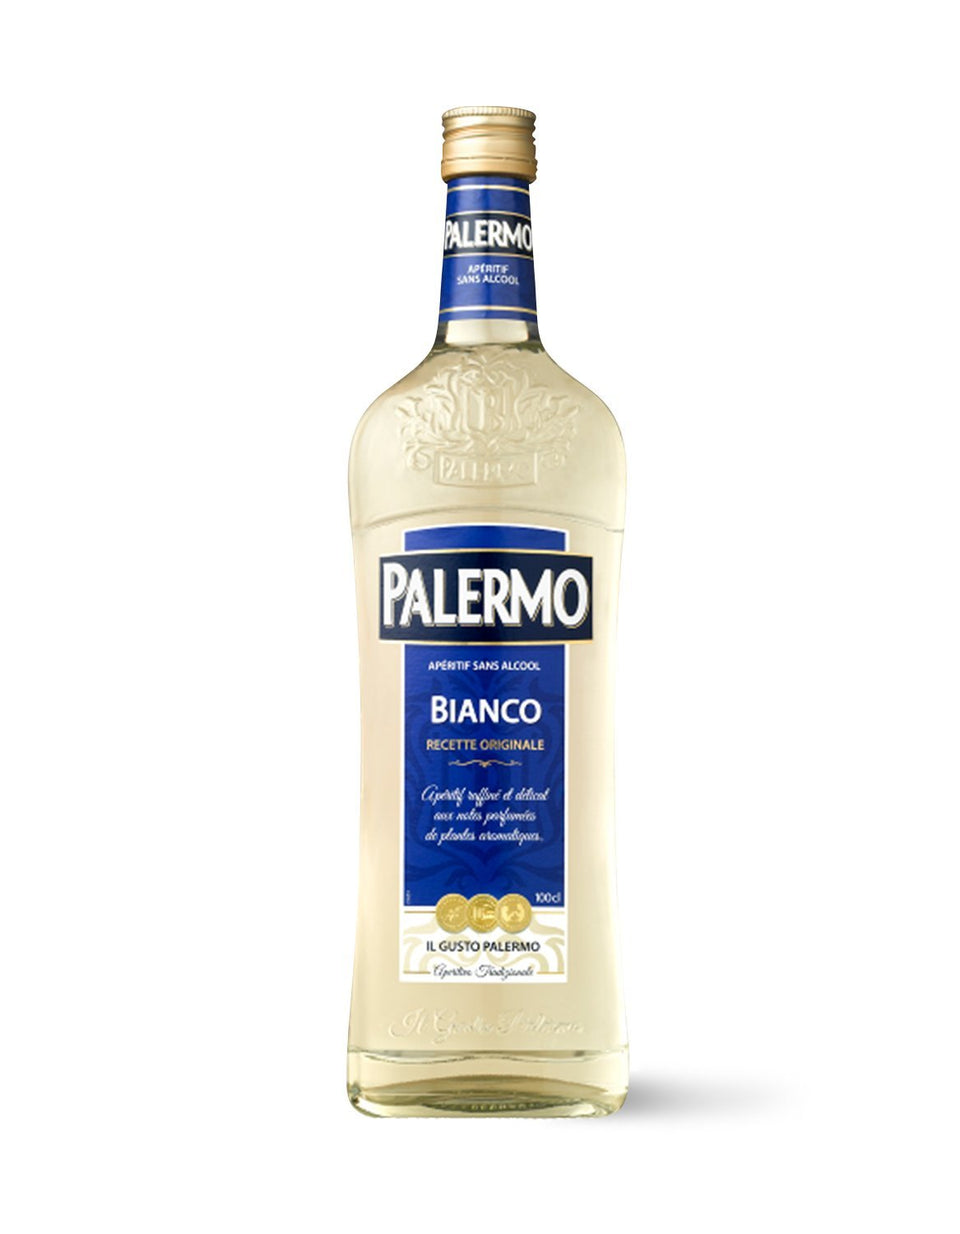 Palermo Bianco Non-Alcoholic Aperitif 1L - Craftzero | Non-Alcoholic Beer, Wine and Spirits